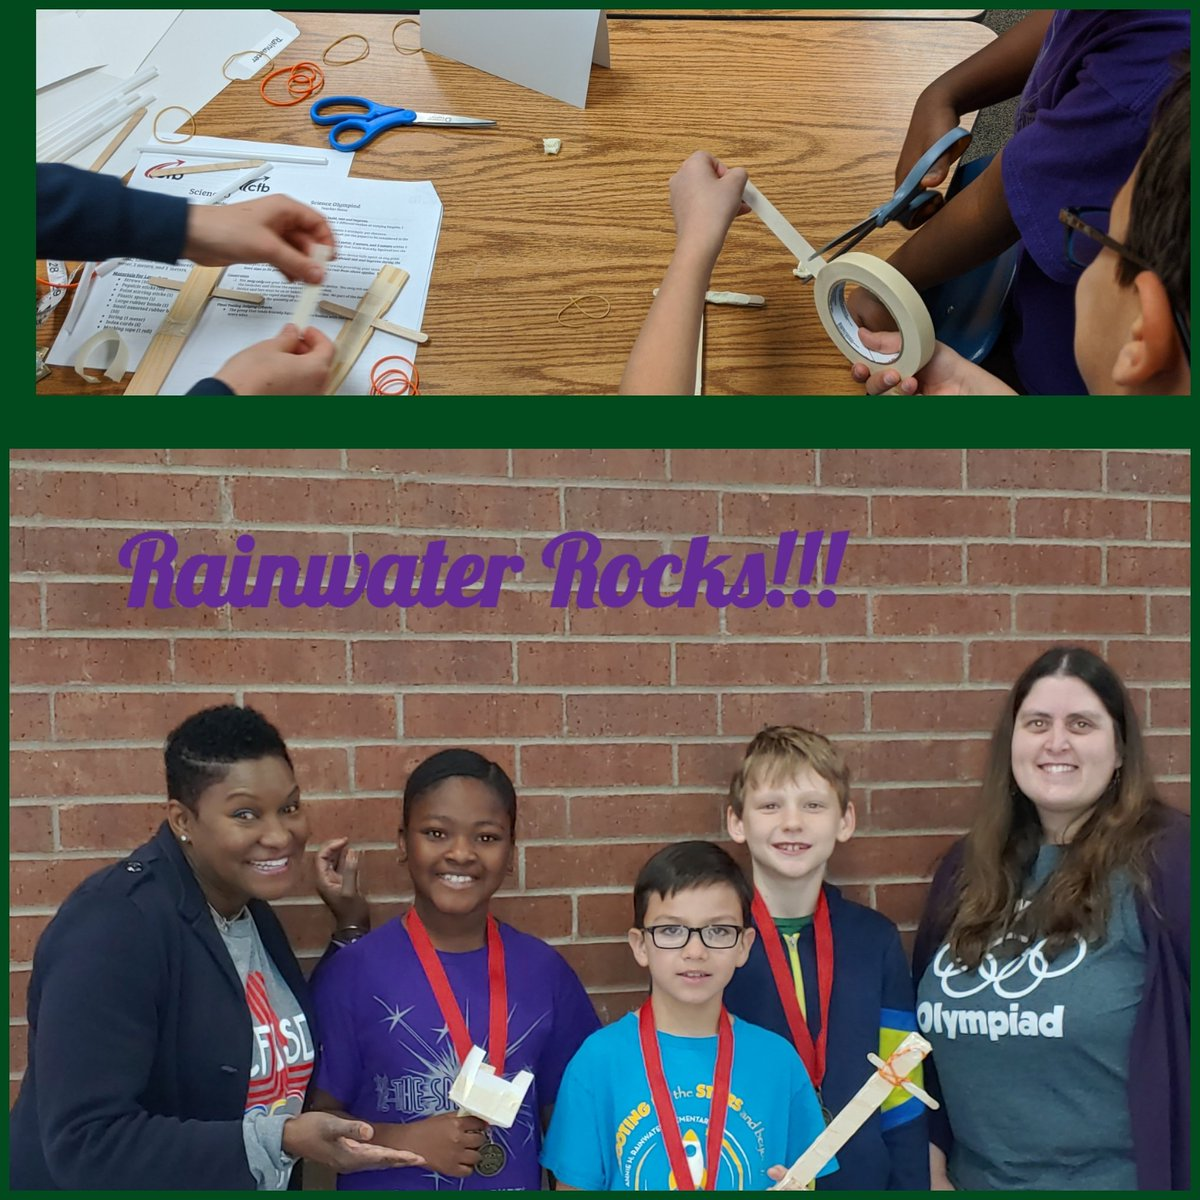 I am so proud of my students! They worked really hard and came in second place in our division at @CFBISD Academic Olympiad!  @CFBRainwater @DrThomasCFB @mrs_mcelveen @DrChapmanCFBISD #RainwaterRocks #BeTheException https://t.co/7I7Yo0MwEU